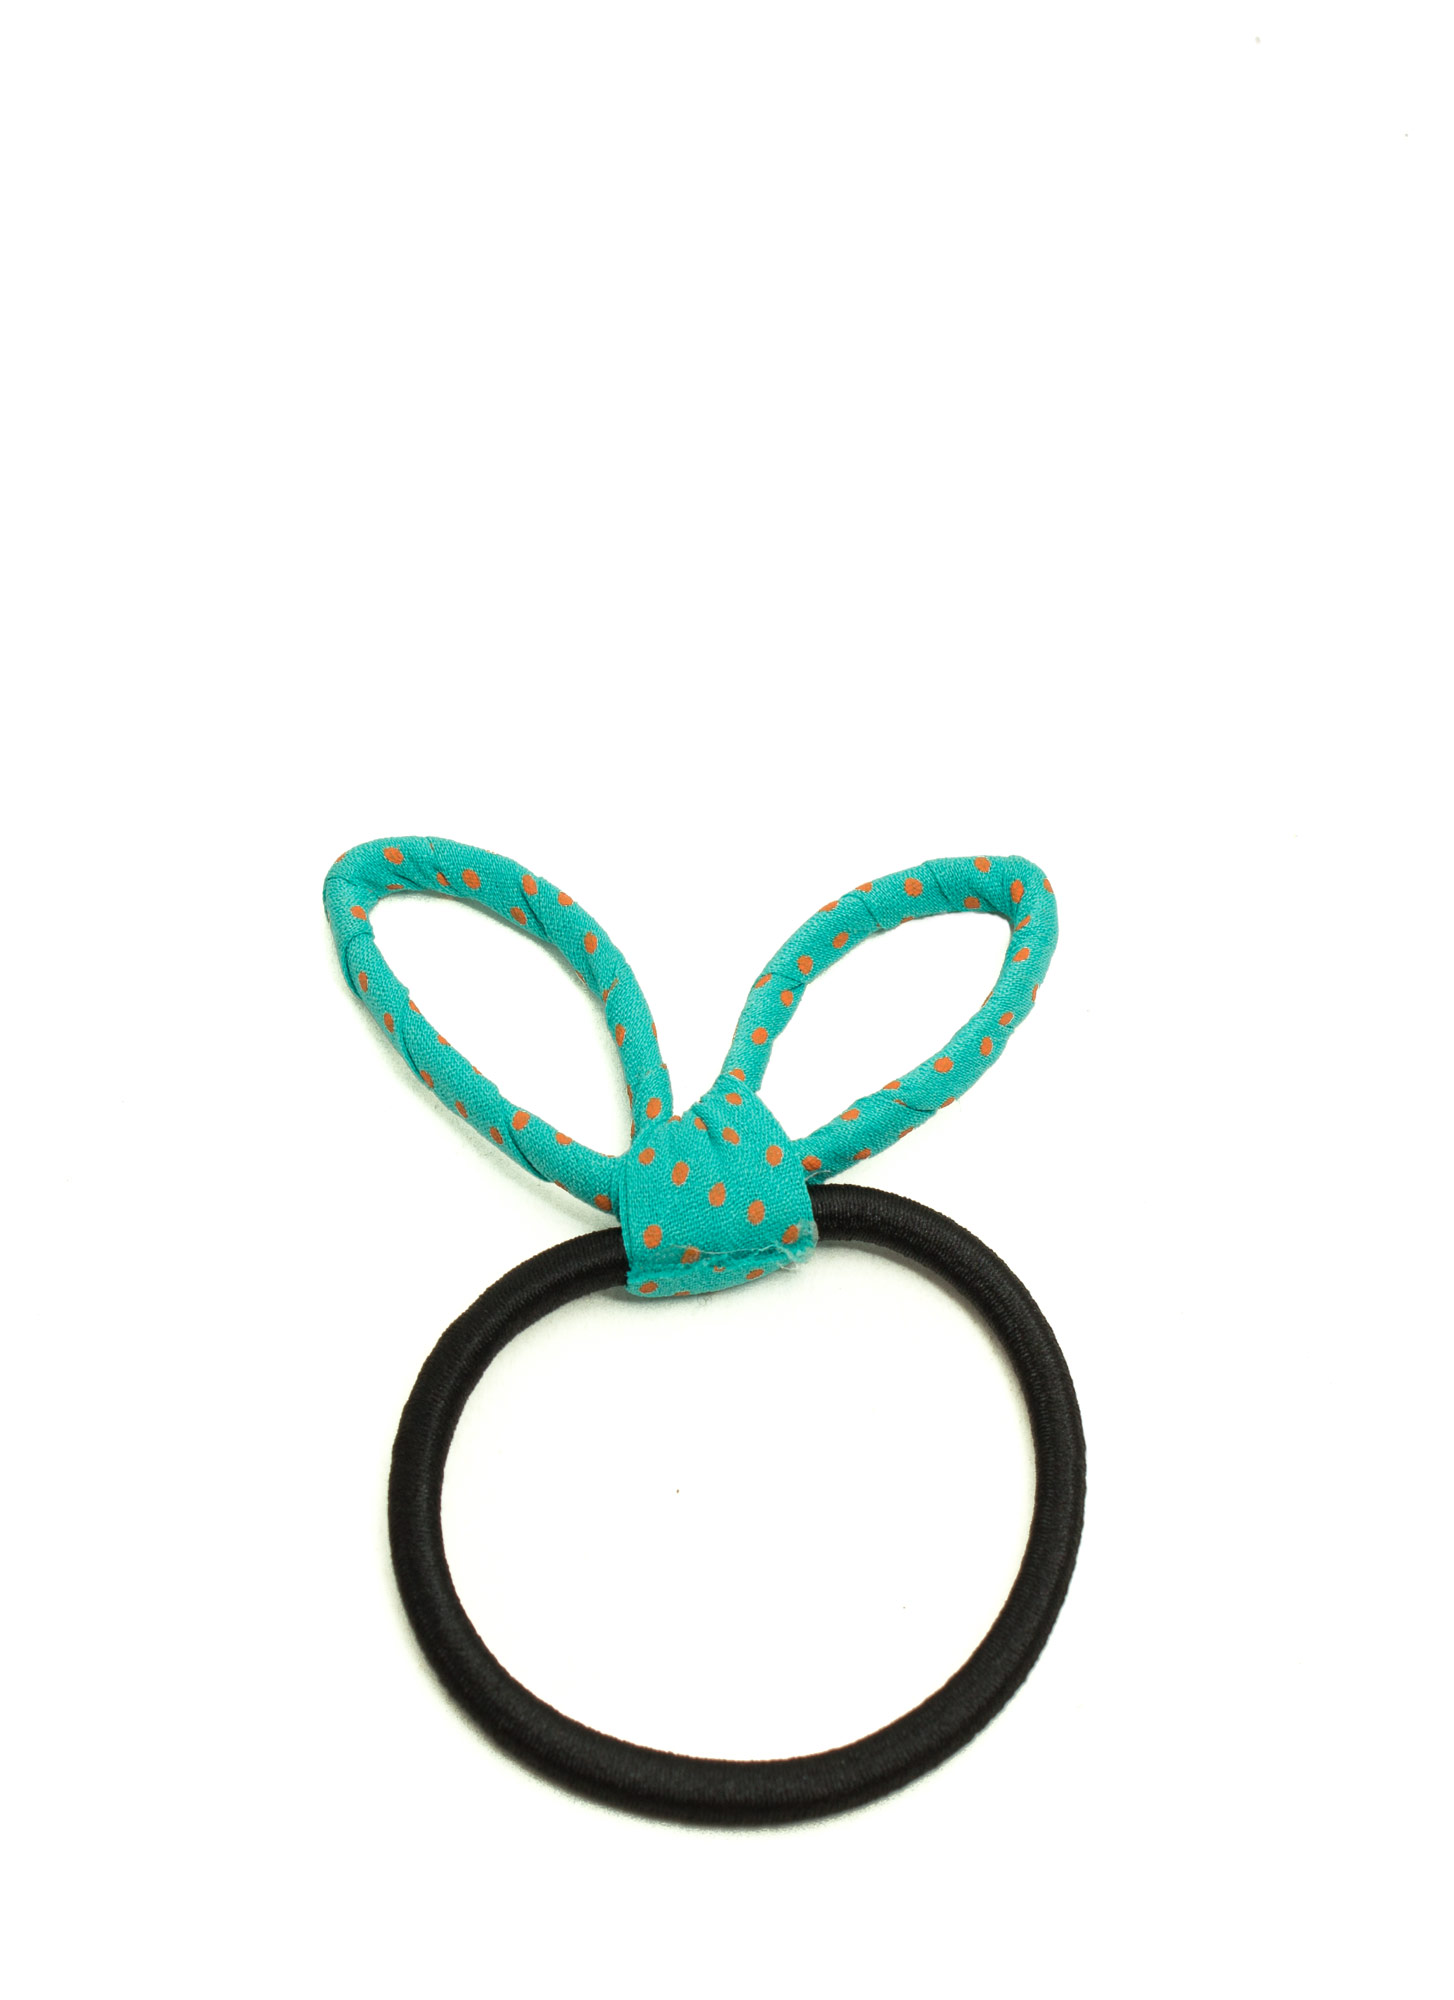 Polka Dot Bunny Ear Hair Tie TEAL